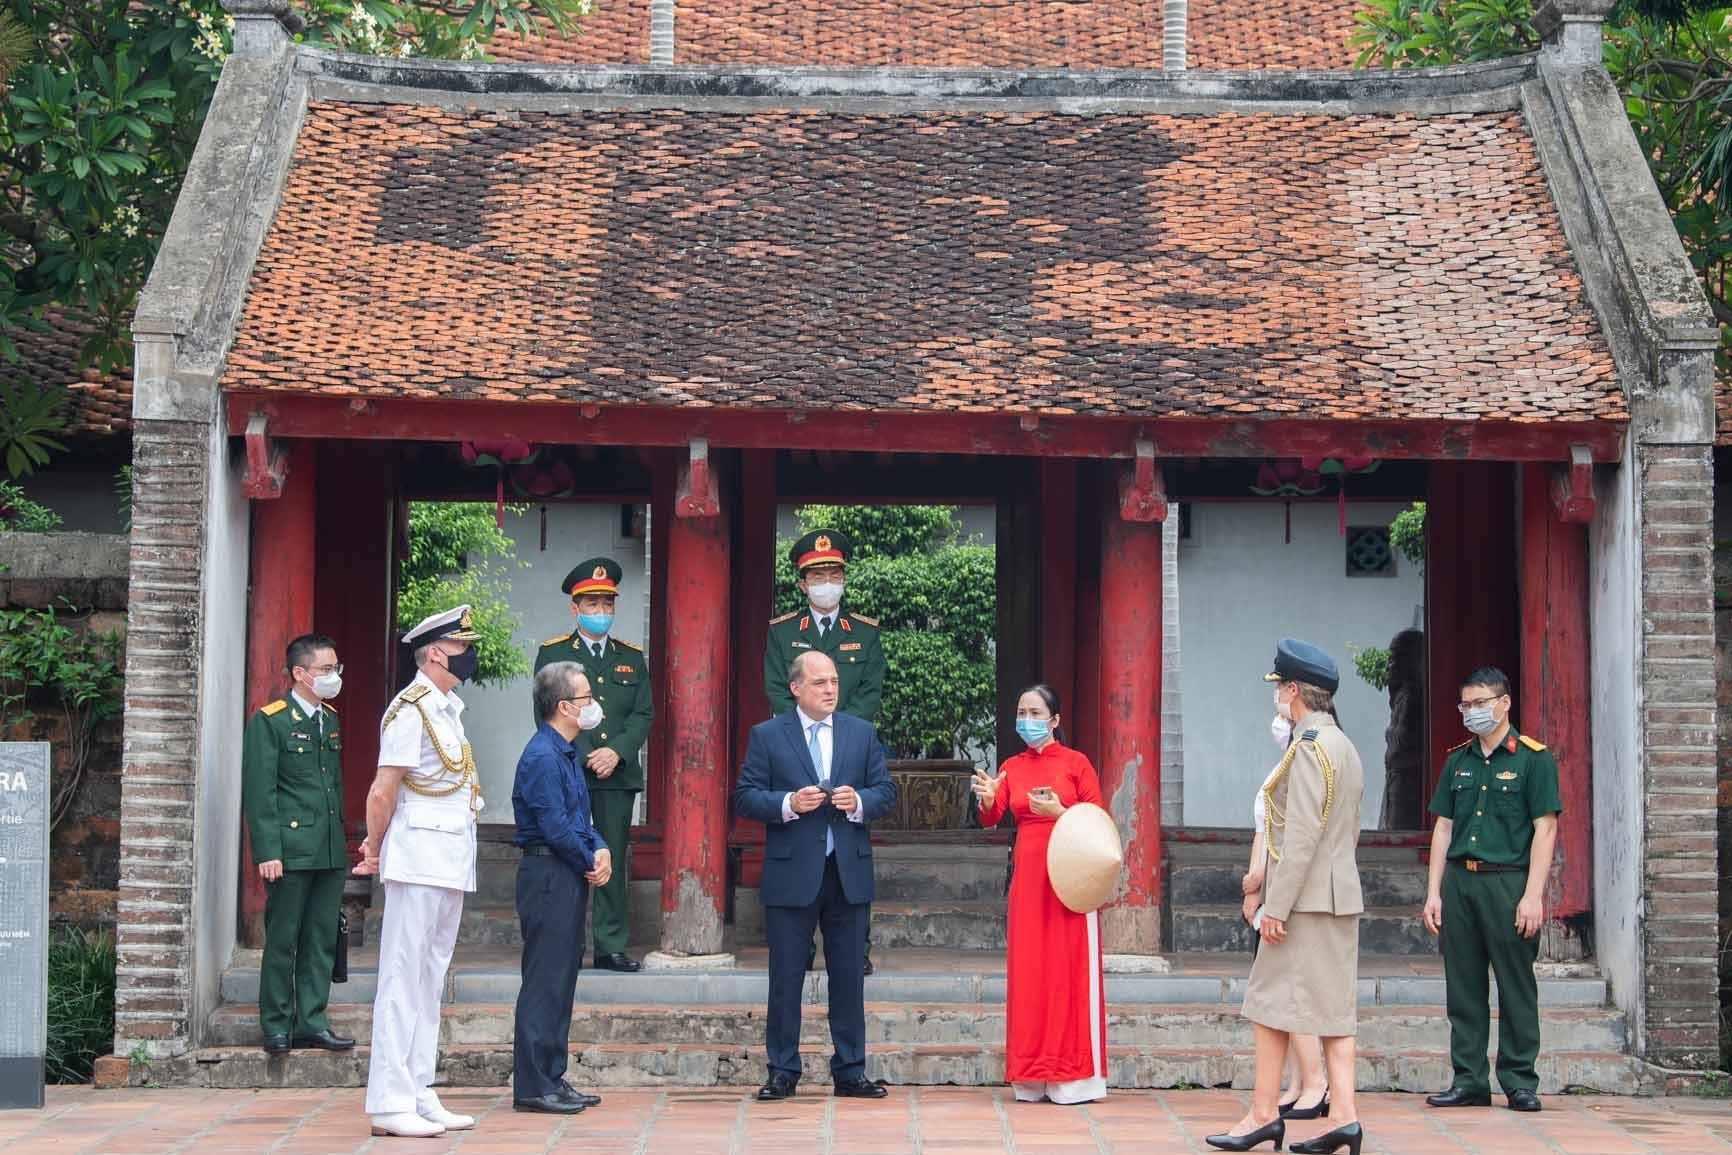 vists the Temple of Literature in Hanoi on Thursday.